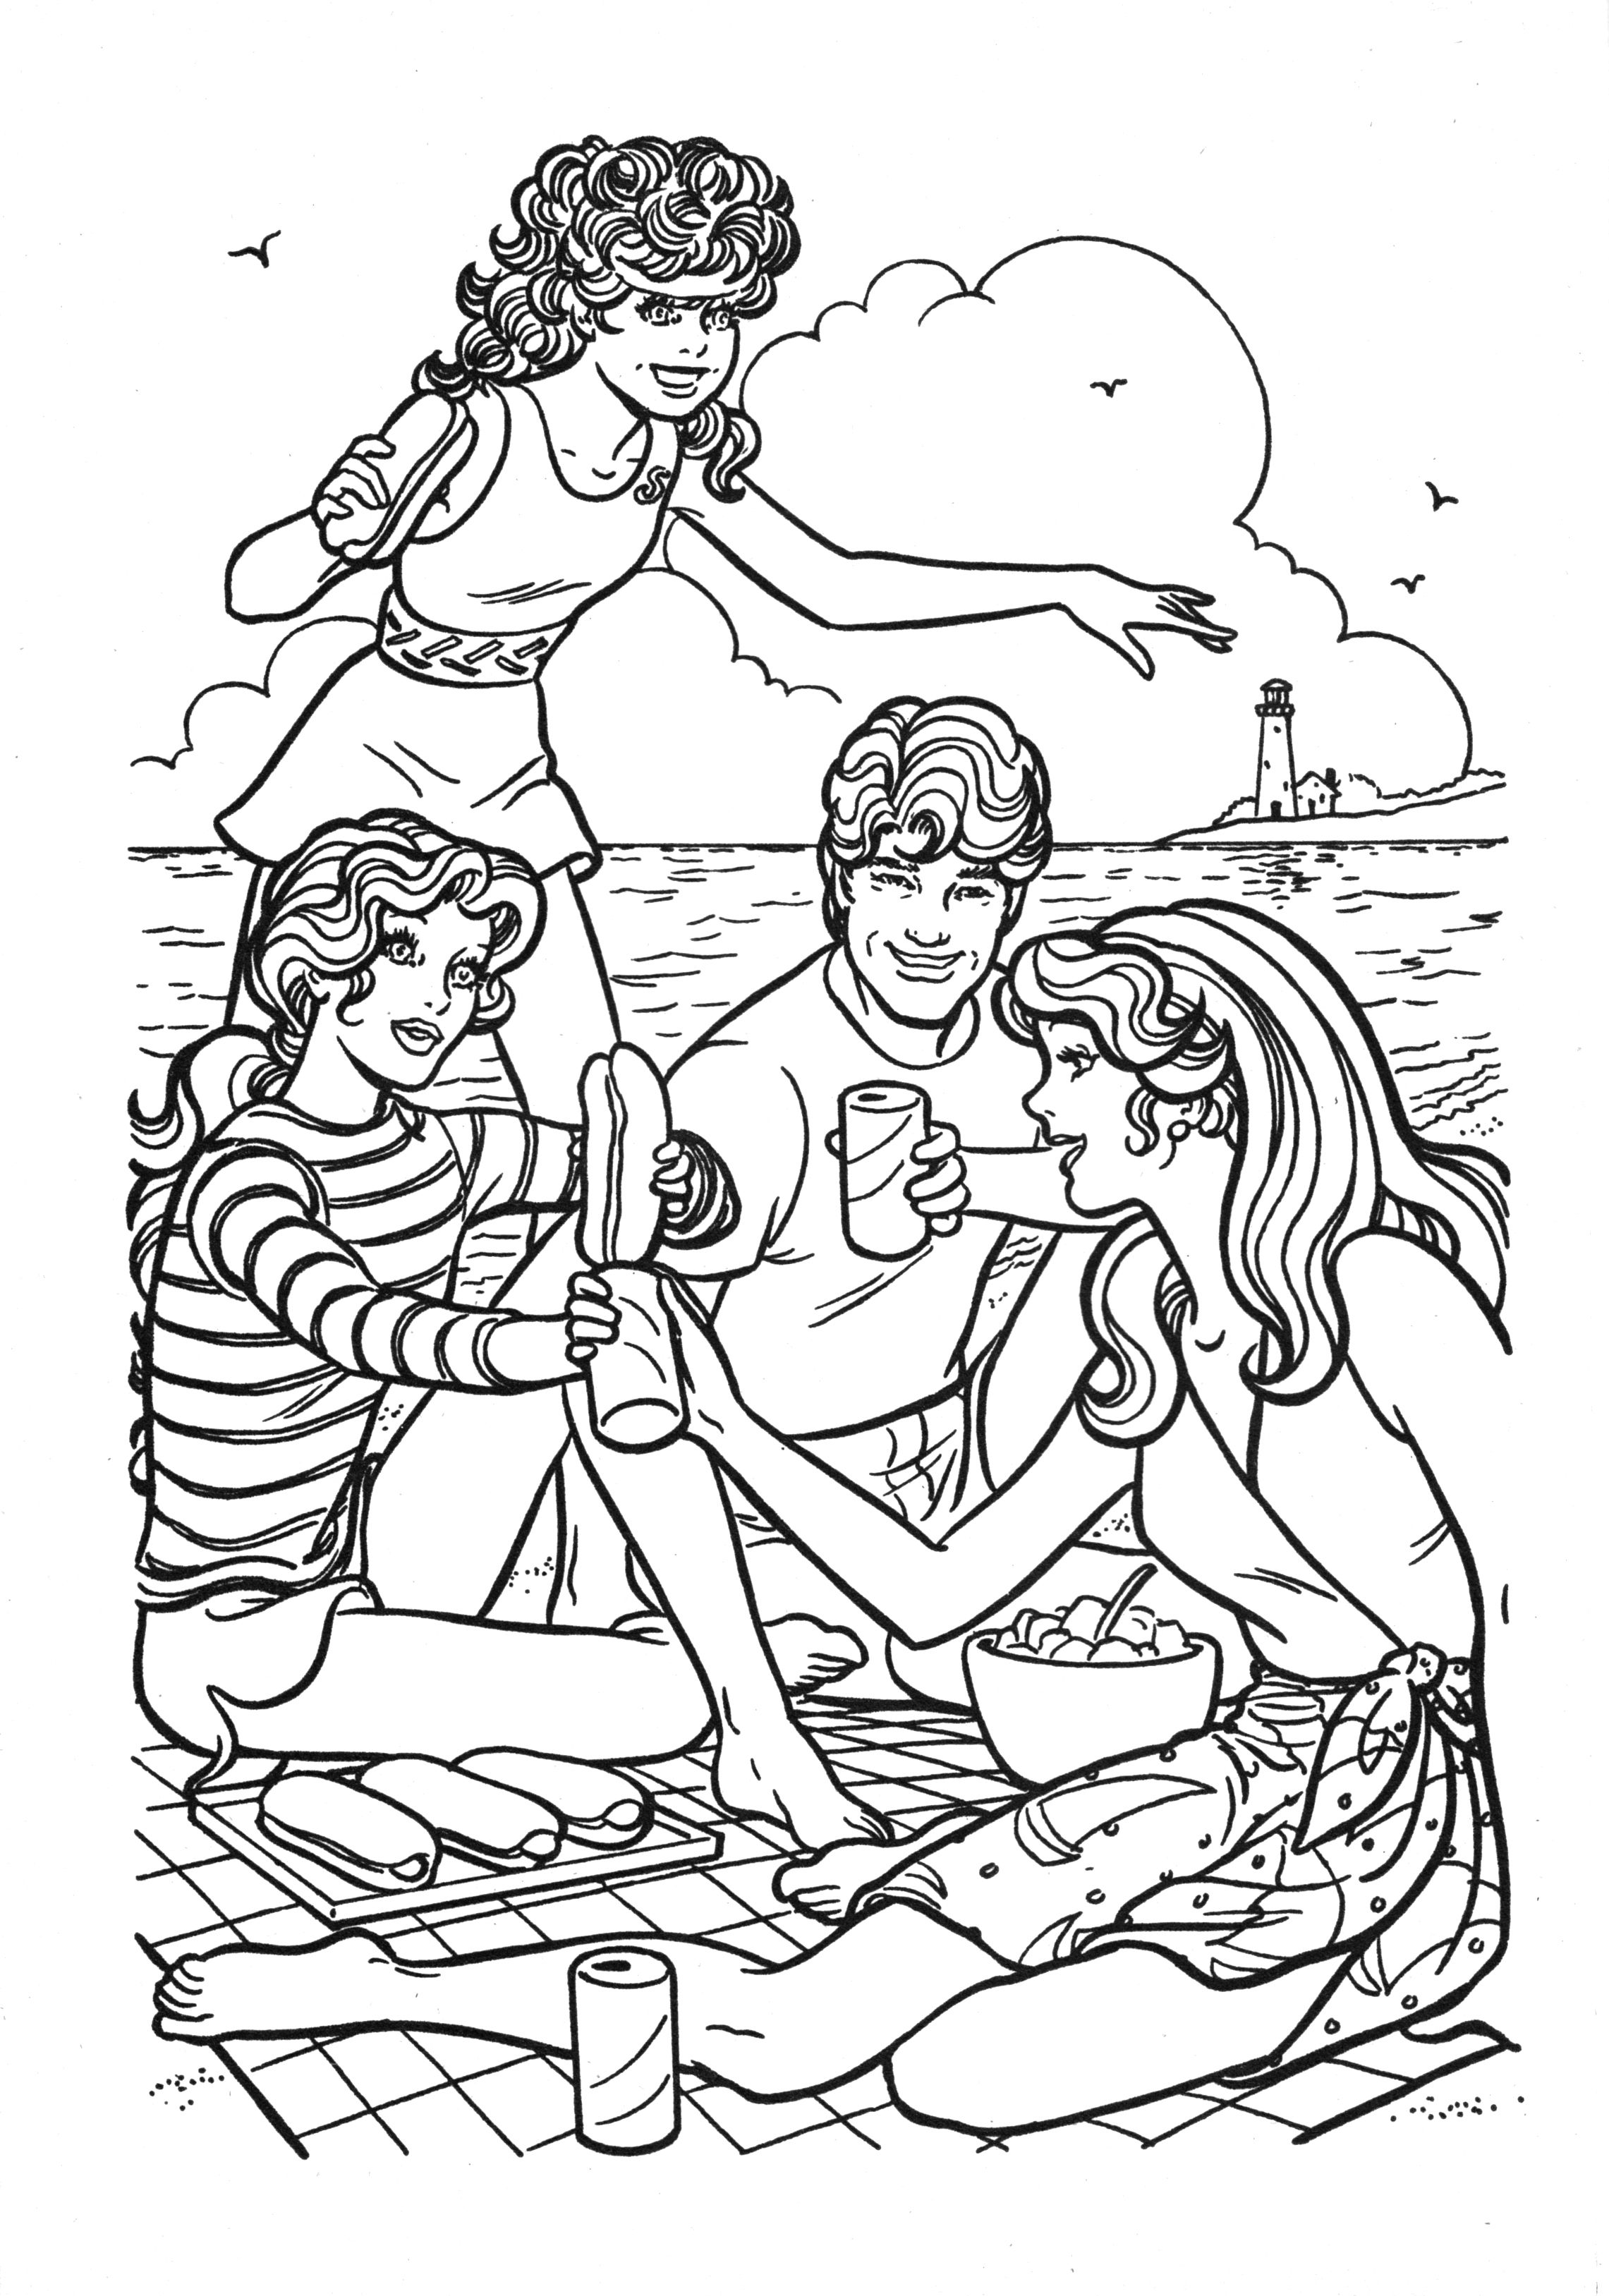 Barbie as the Princess and the Pauper coloring picture coloring